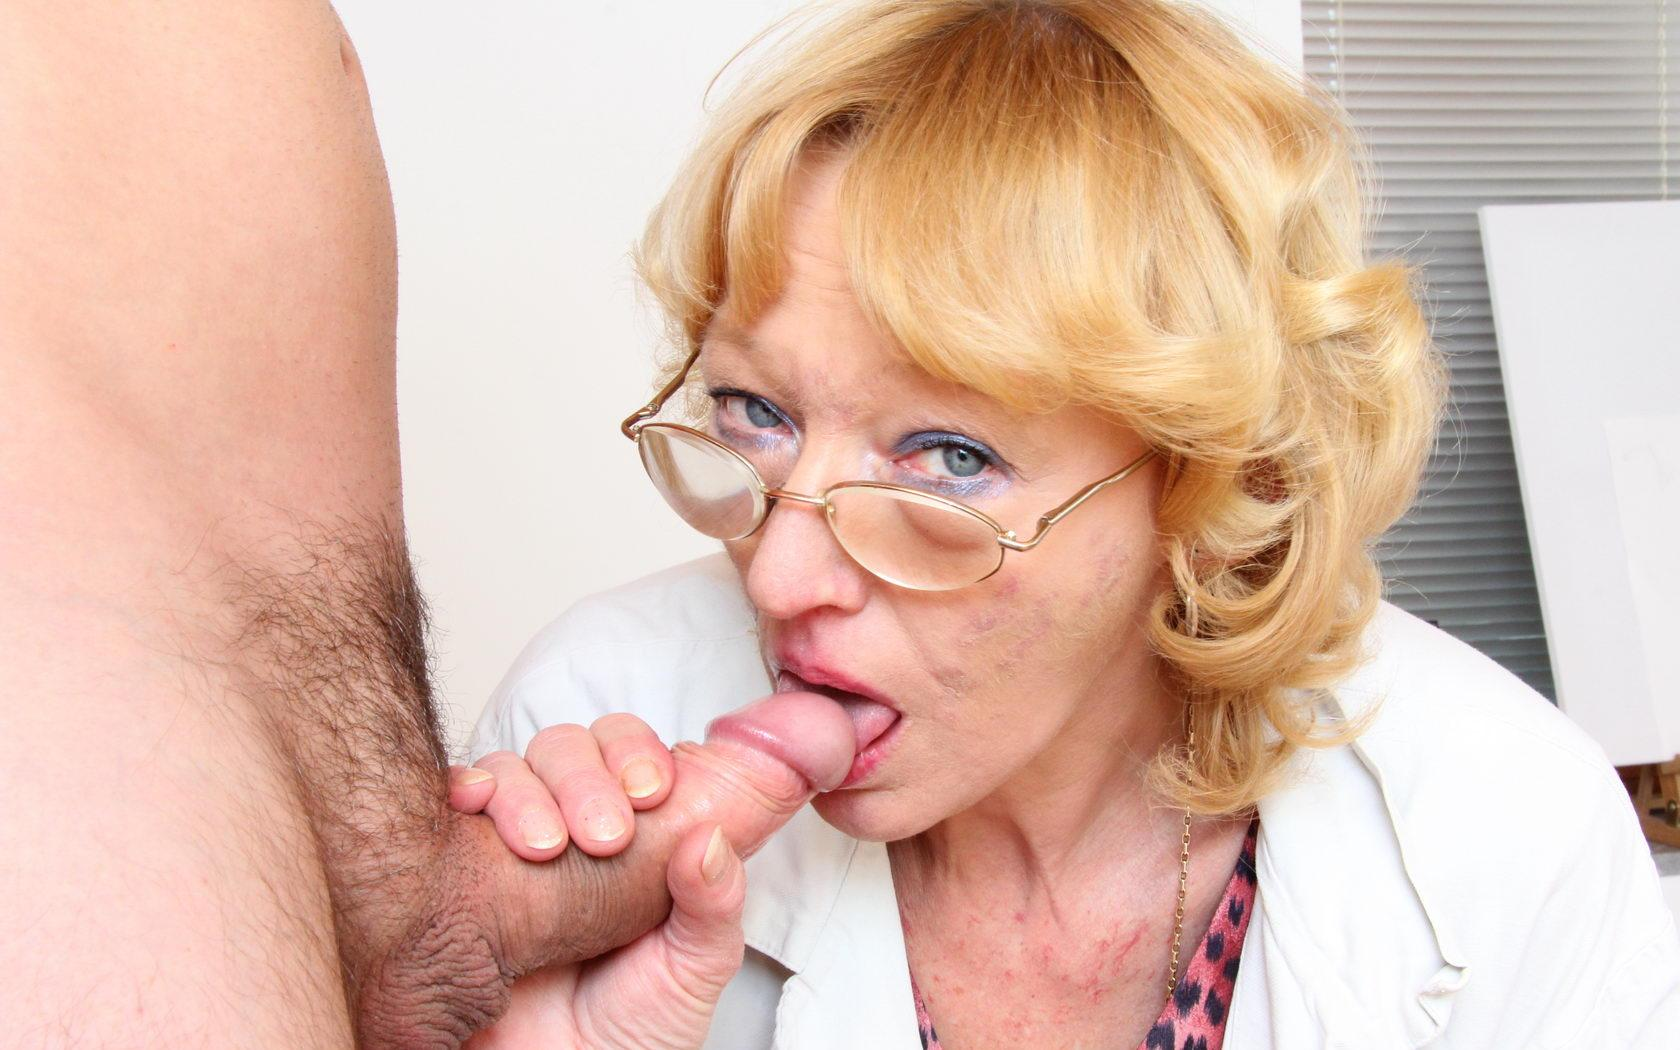 Jada a sexy granny giving a passionate head to a young fella